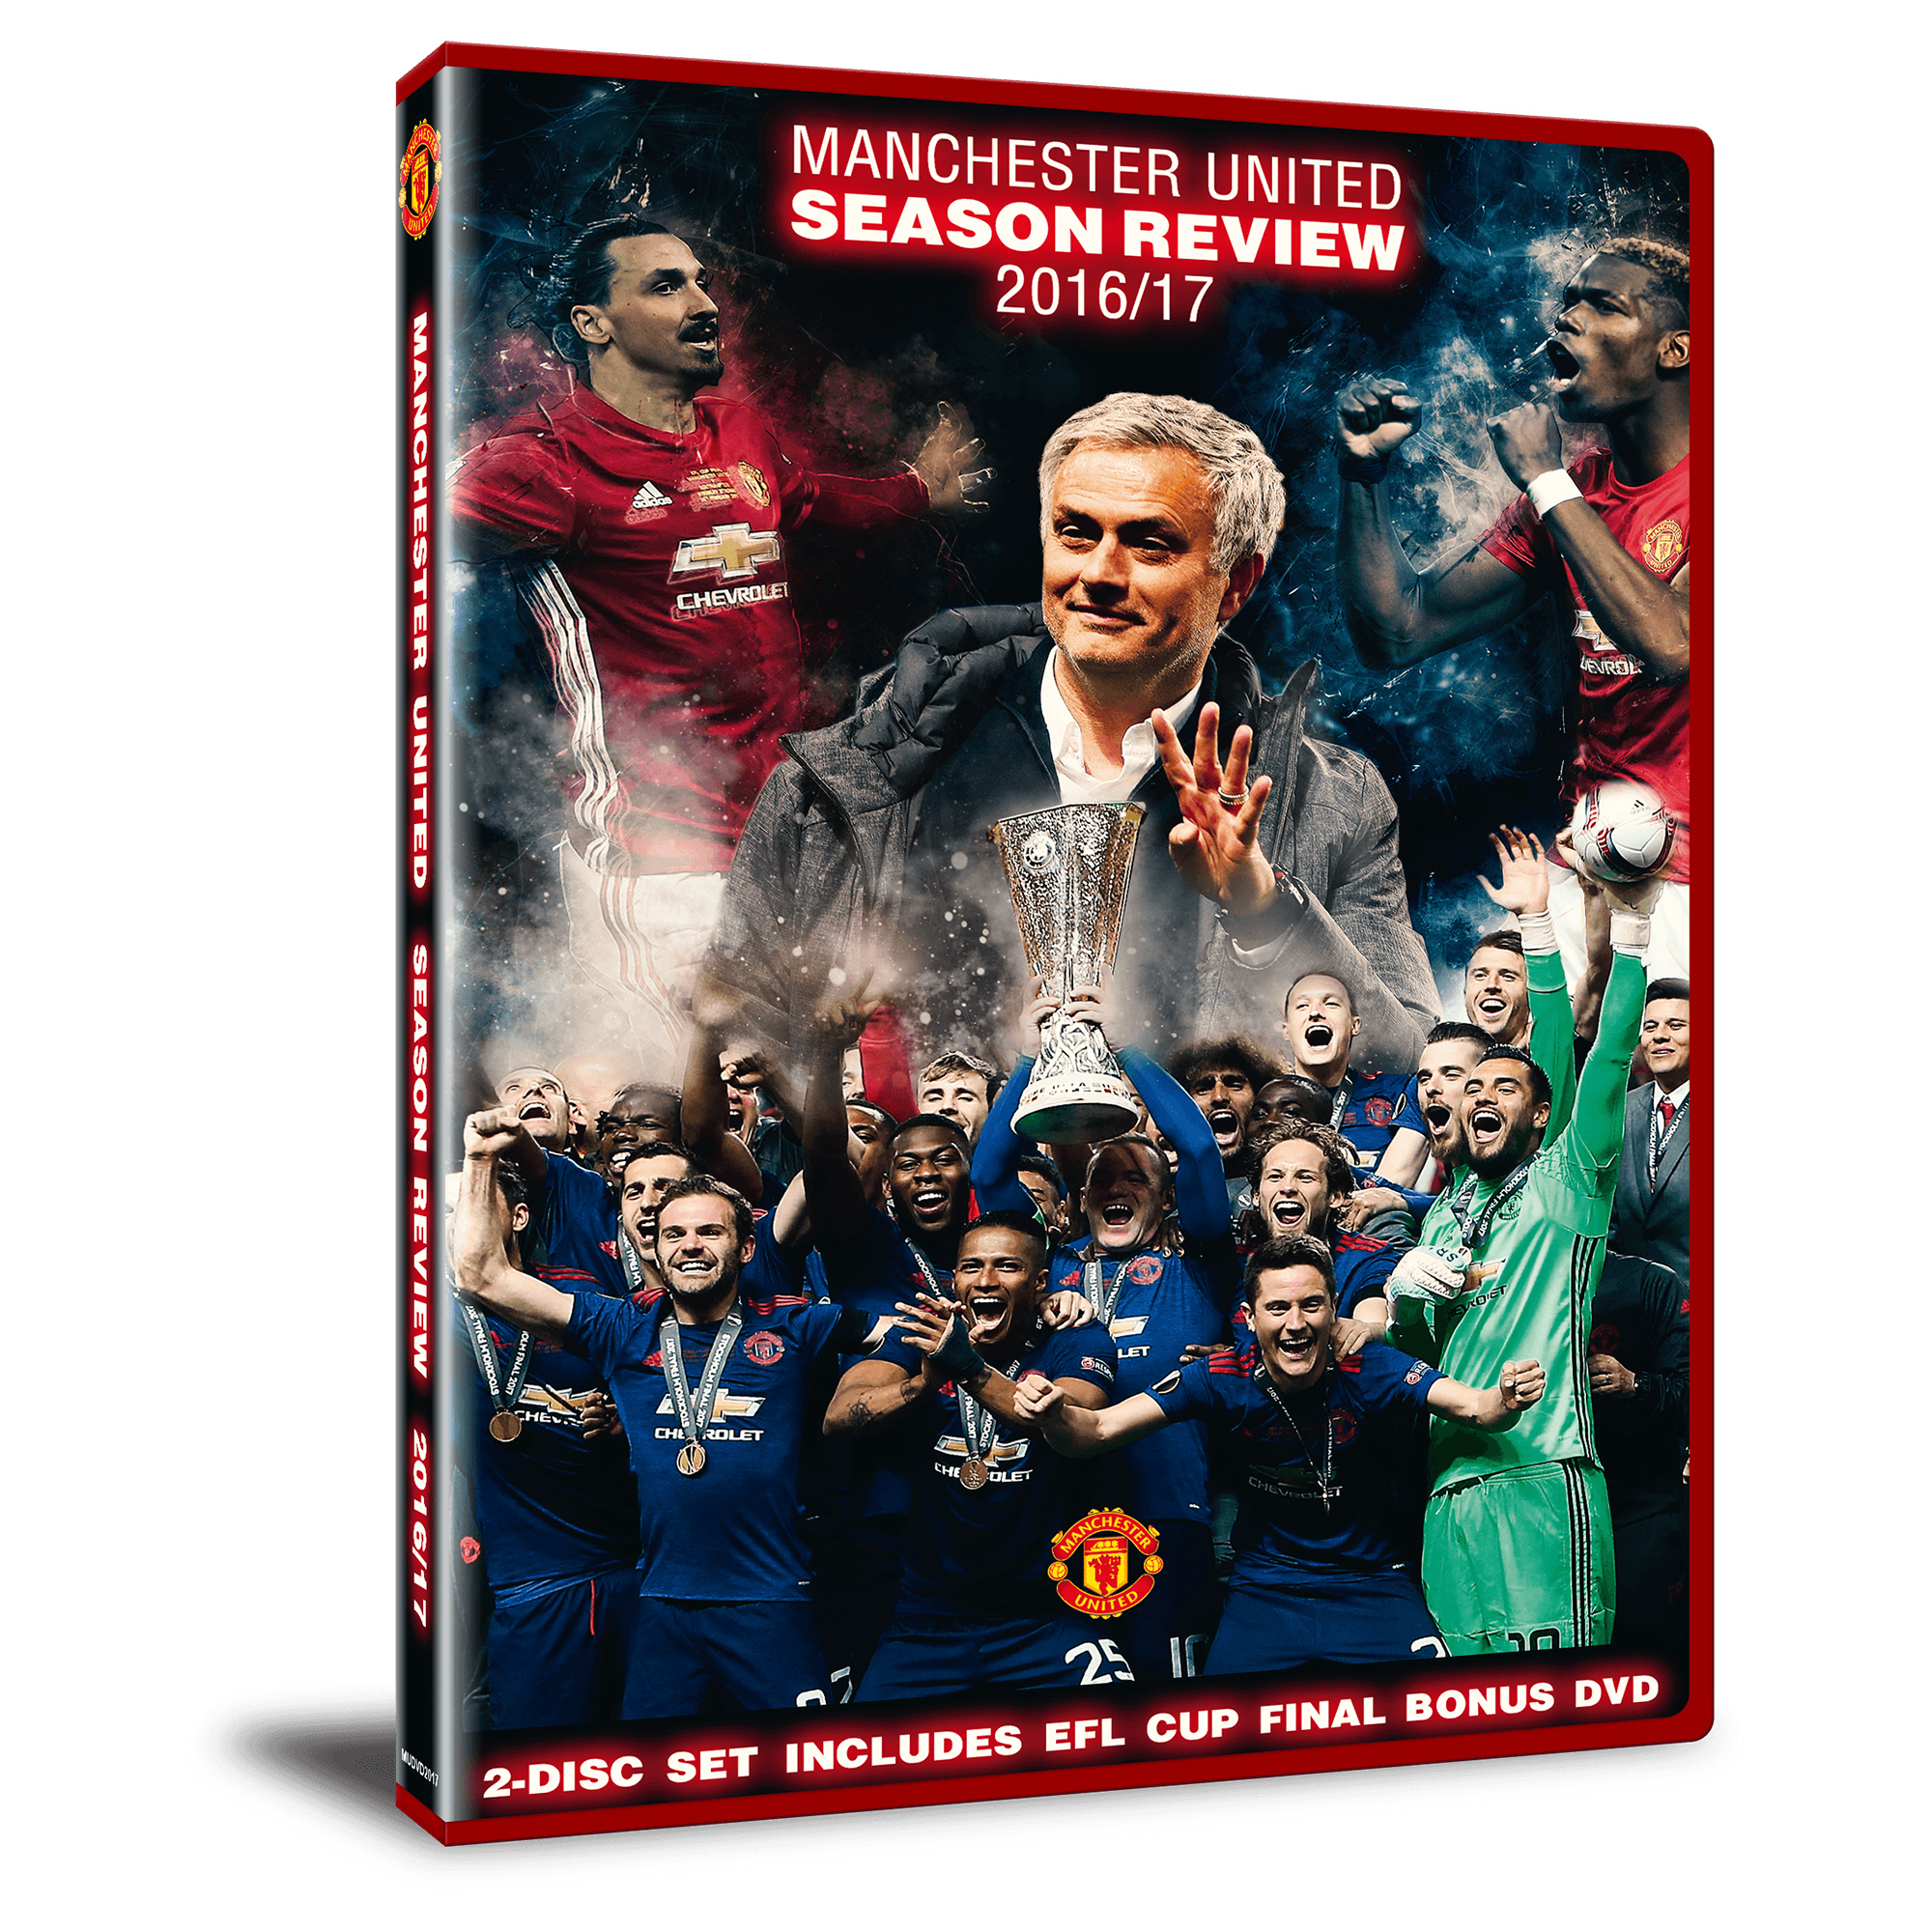 Manchester United Season Review 2016-17 DVD